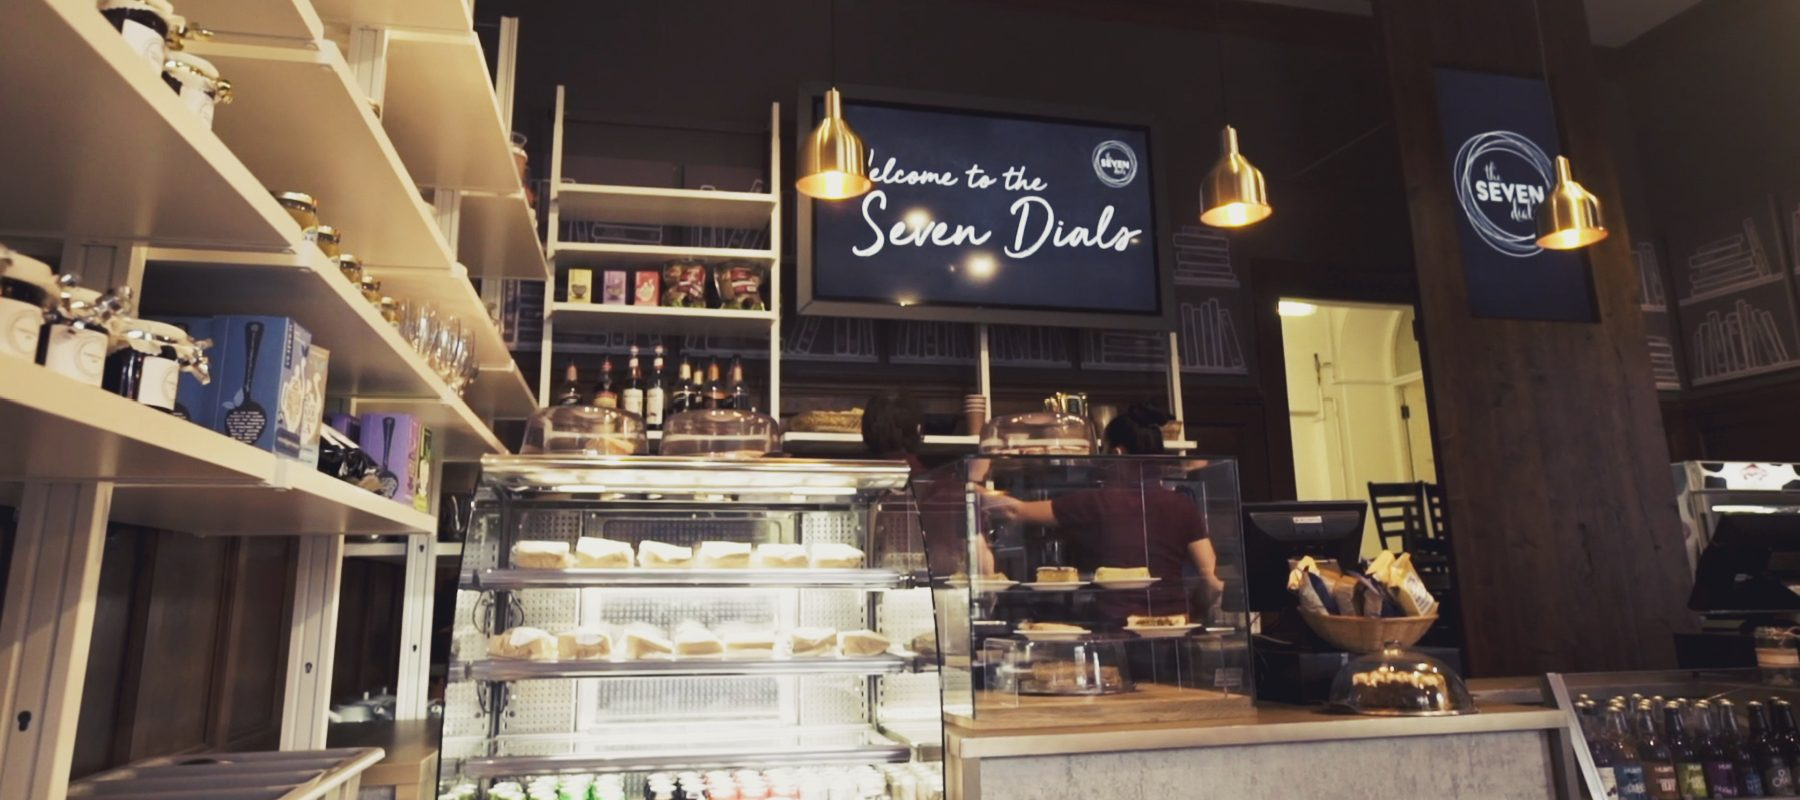 Digital Signage solution for The Seven Dials Cafe